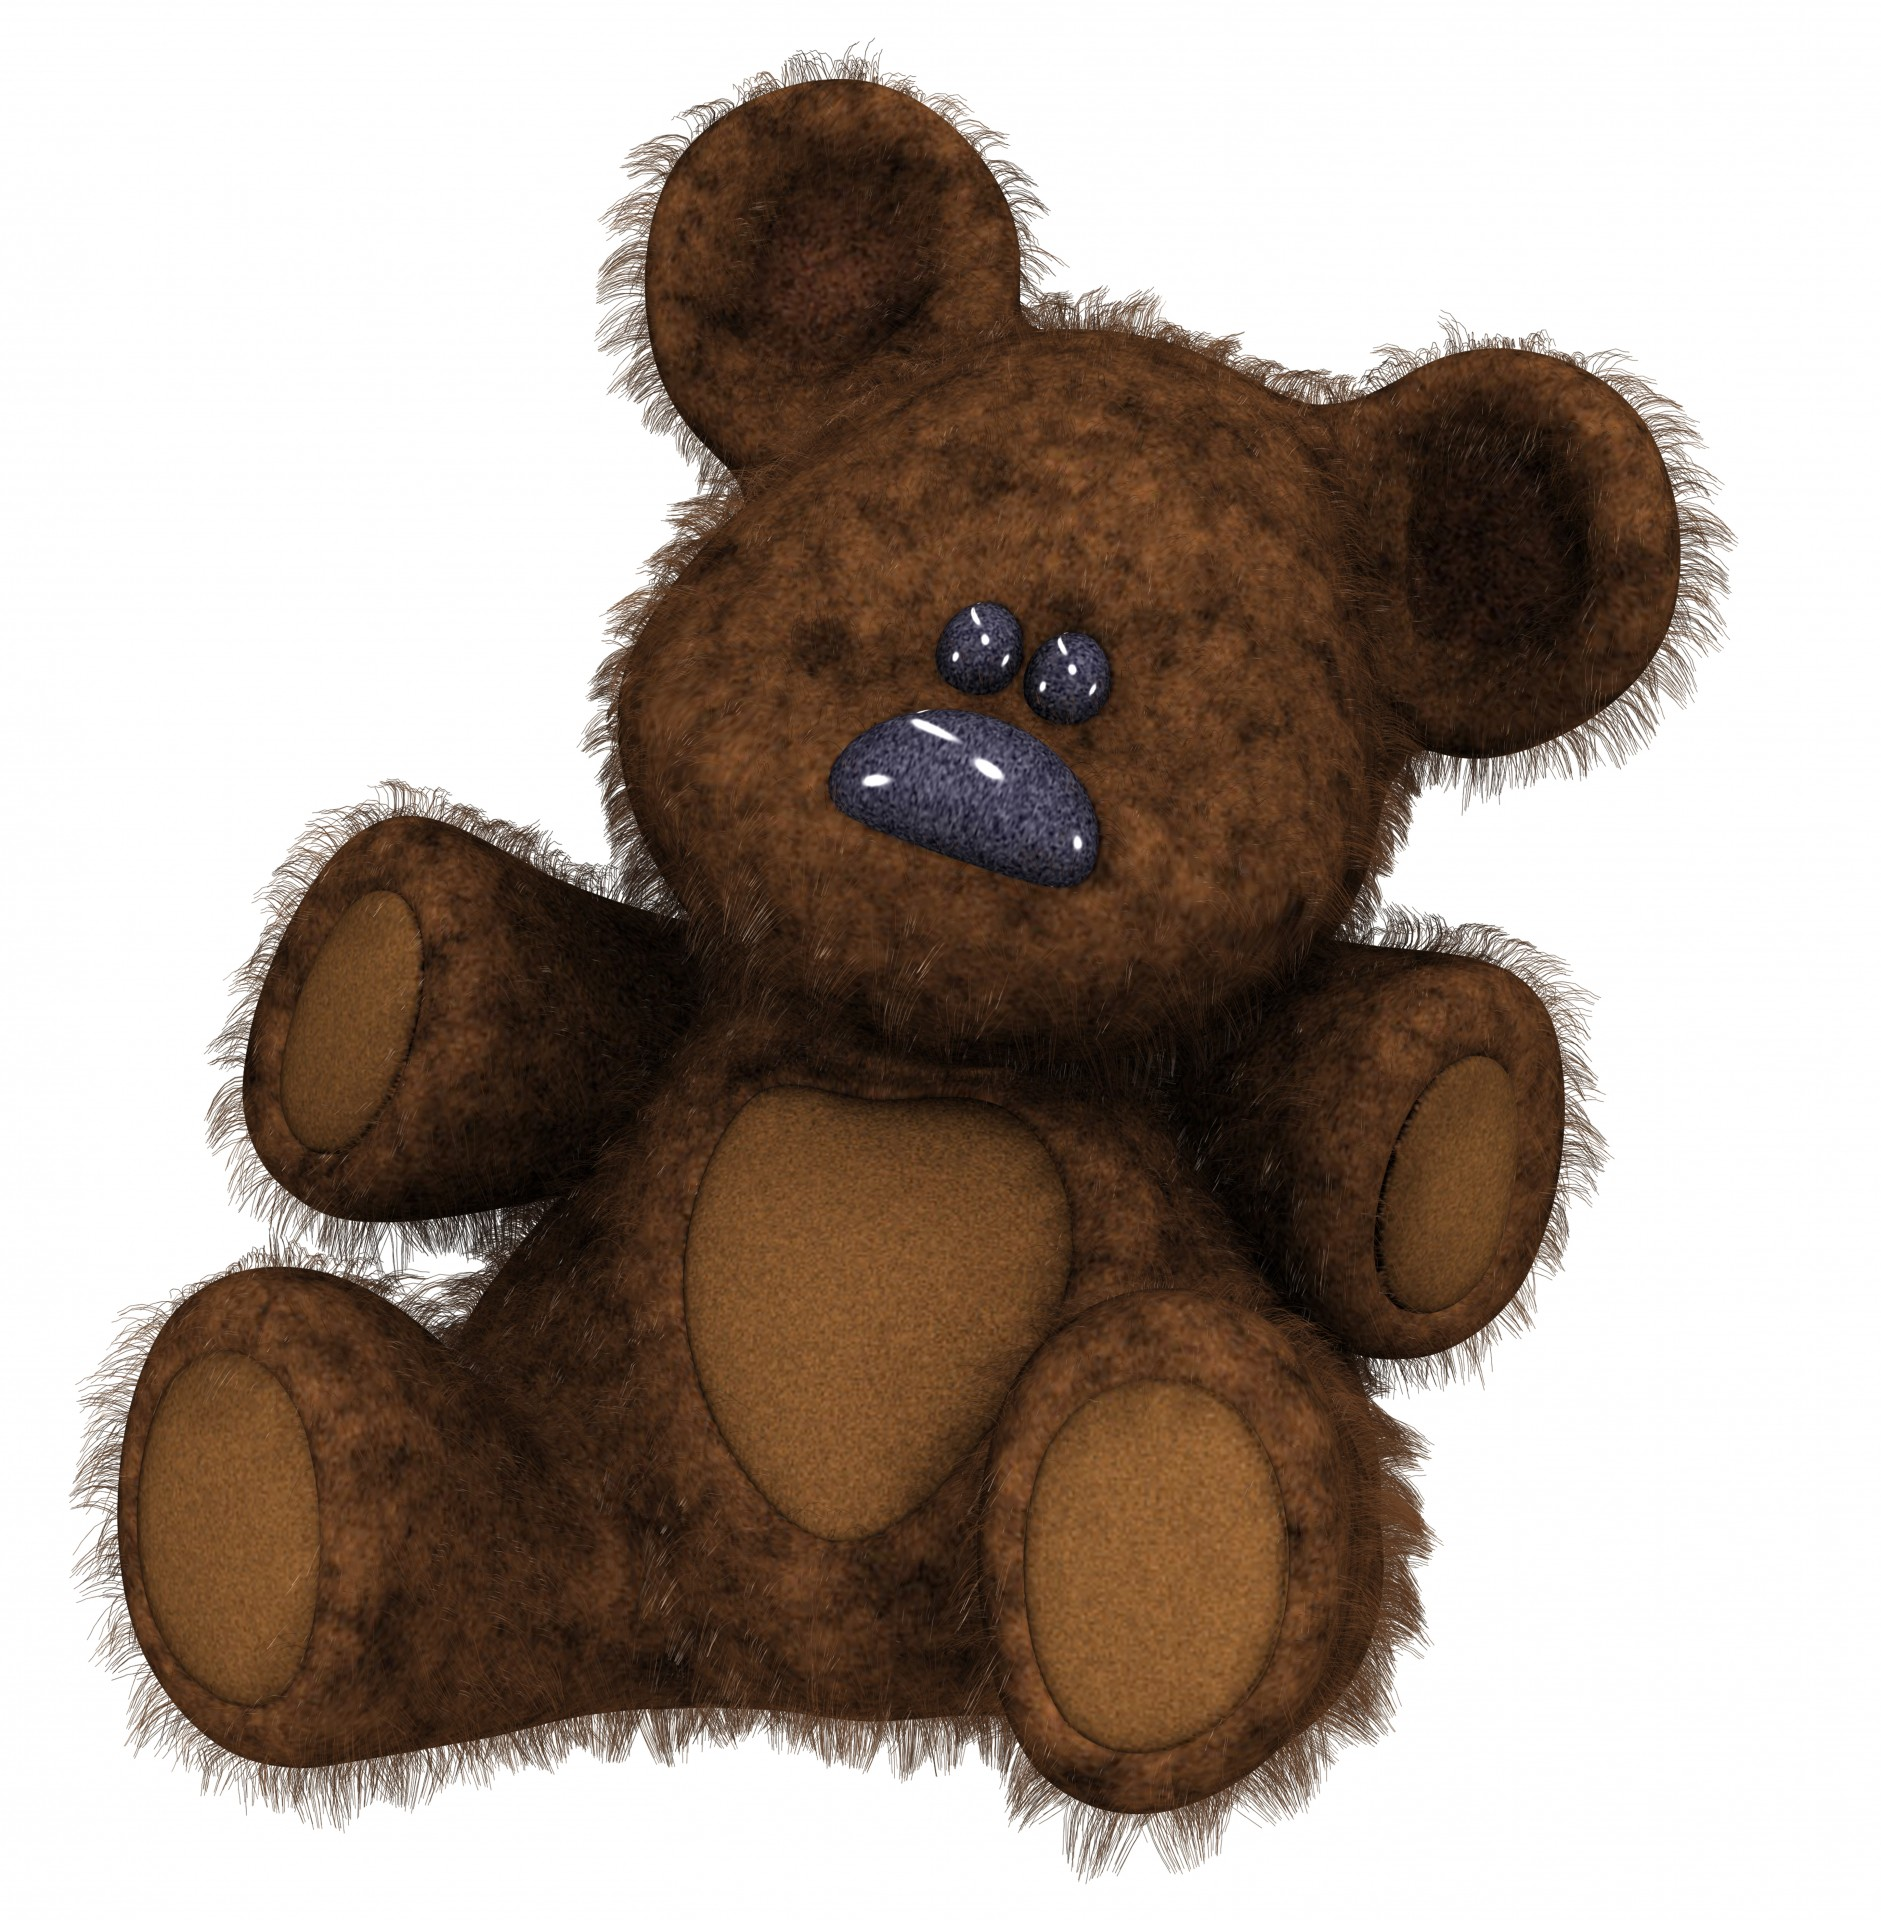 Teddy bear free stock. Bears clipart cartoon